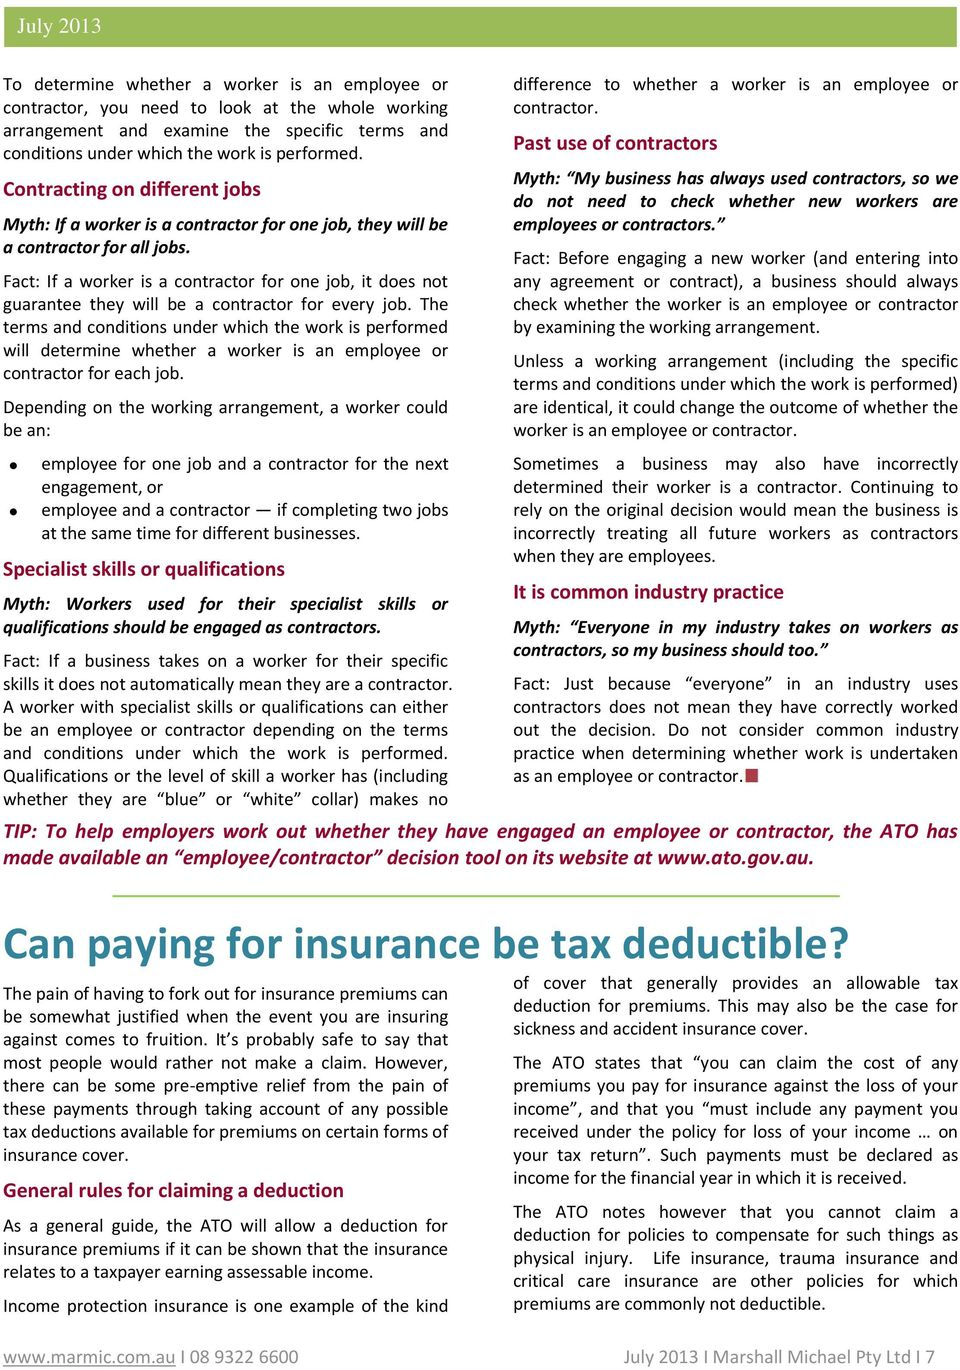 Ban On Smsf In Specie Contributions Dropped Pdf